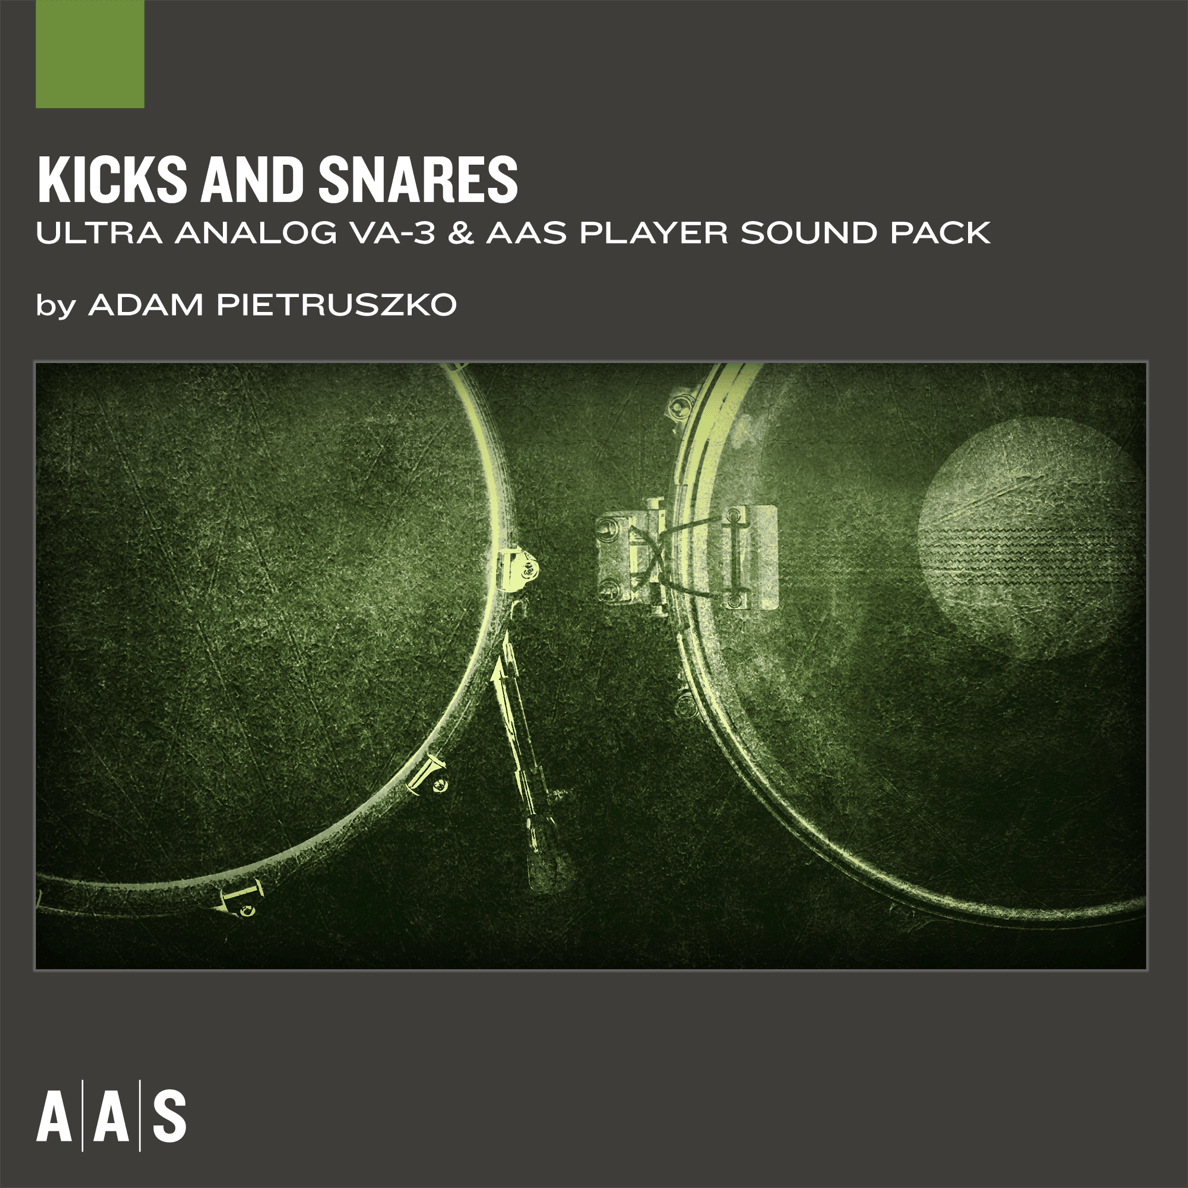 AAS Sound Packs: Kicks and Snares